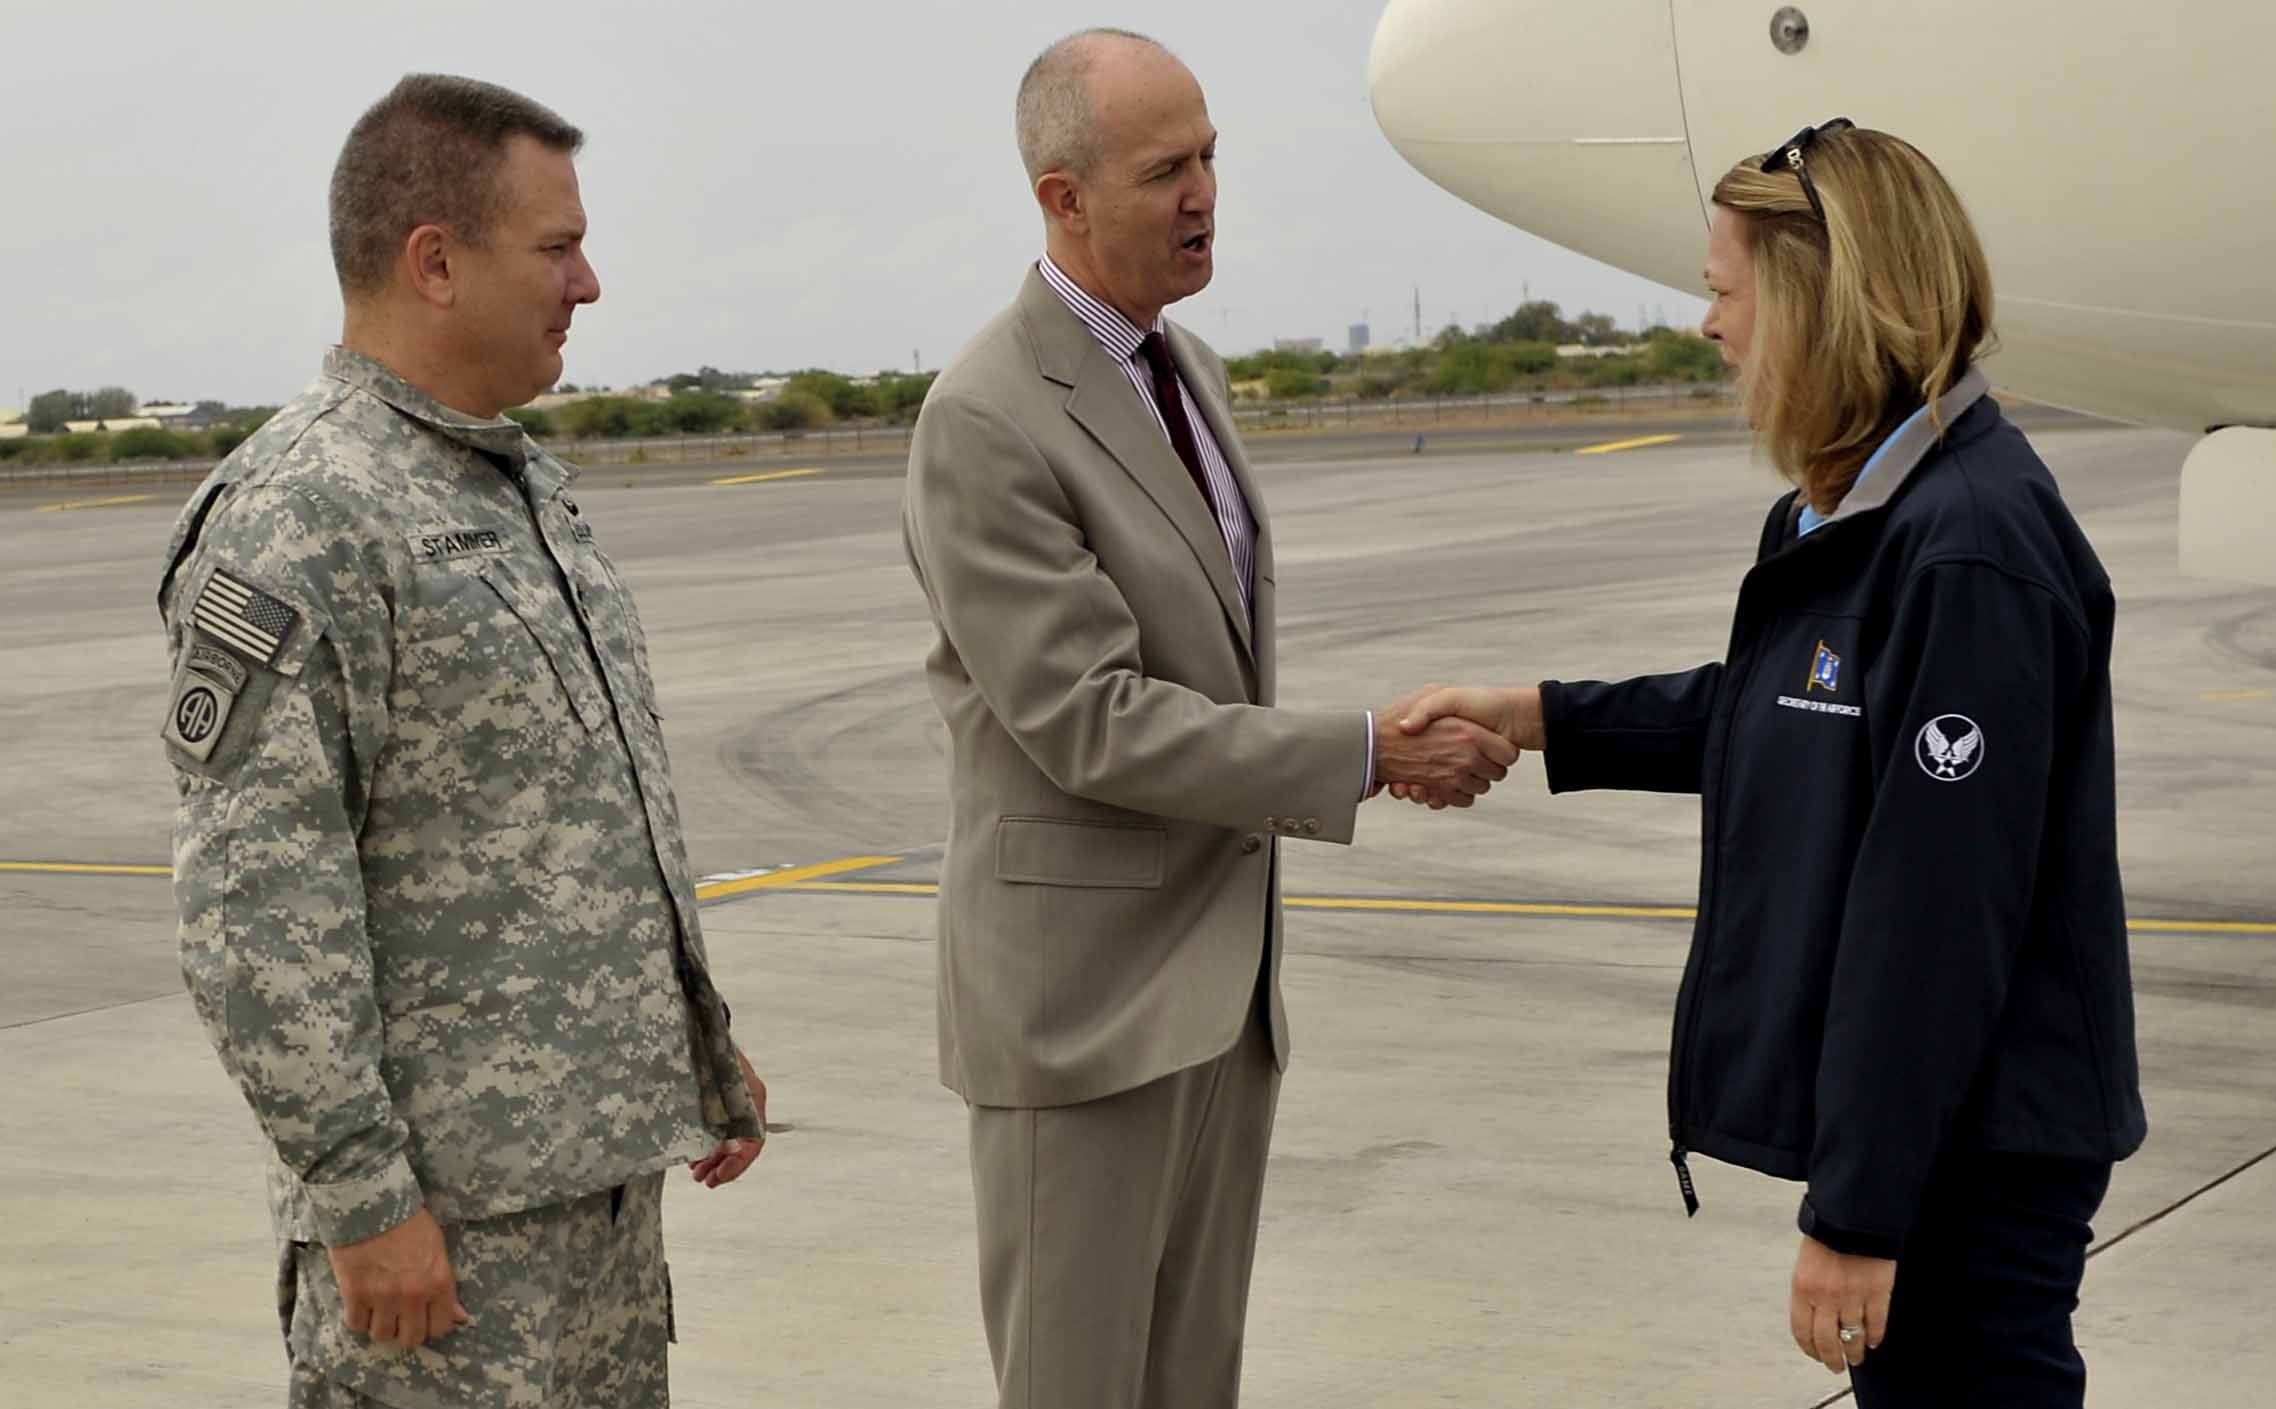 Secretary of the Air Force Deborah Lee James is greeted by Amb. Tom Kelly, U.S. Ambassador to the Republic of Djibouti and Maj. Gen. Mark Stammer, Combined Joint Task Force – Horn of Africa commander, upon arrival at Camp Lemonnier, Nov.12, 2015. James met with the ambassador, senior leaders from Camp Lemonnier and CJTF-HOA as well as Airmen working at Chebelley Airfield. (U.S. Air Force photo by Tech. Sgt. Dan DeCook)